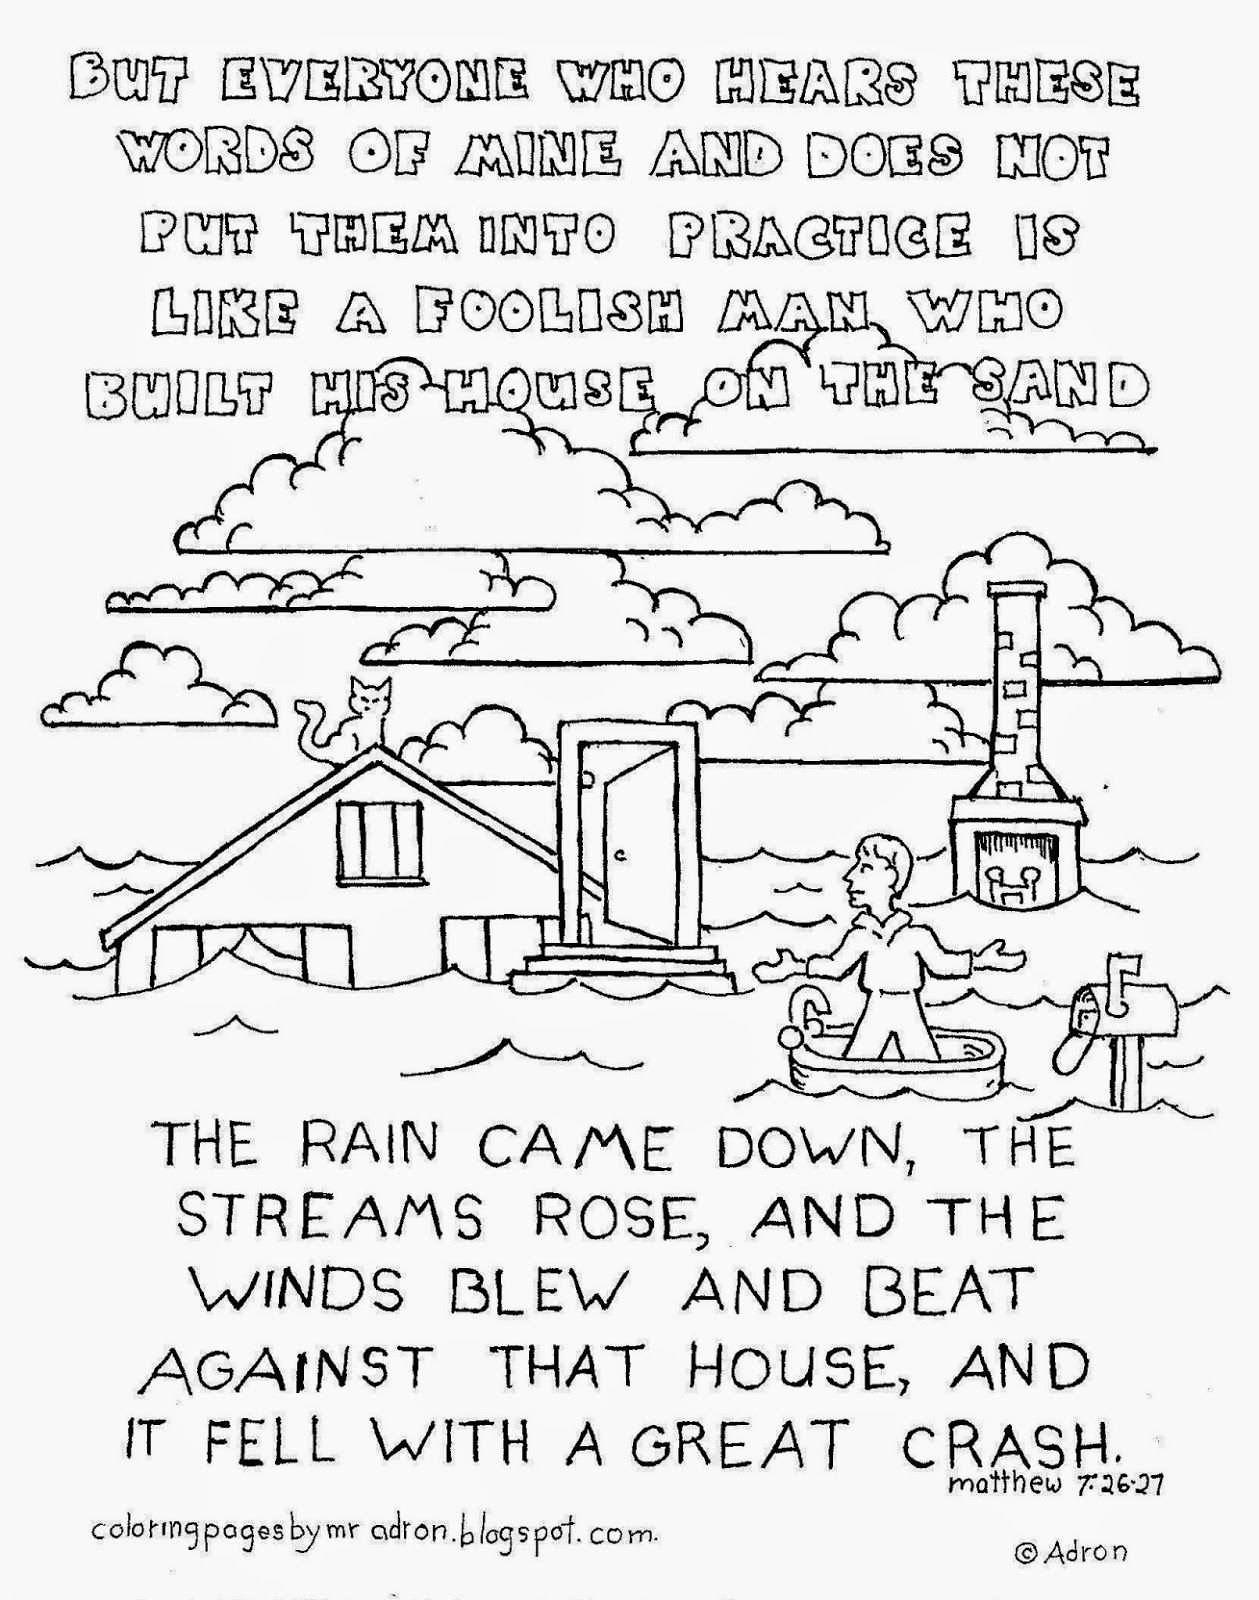 The Man Who Built His House On The Sand Coloring Page See More At My Blog Http Coloringpagesbym Coloring Pages For Kids Coloring Pages Bible Coloring Pages